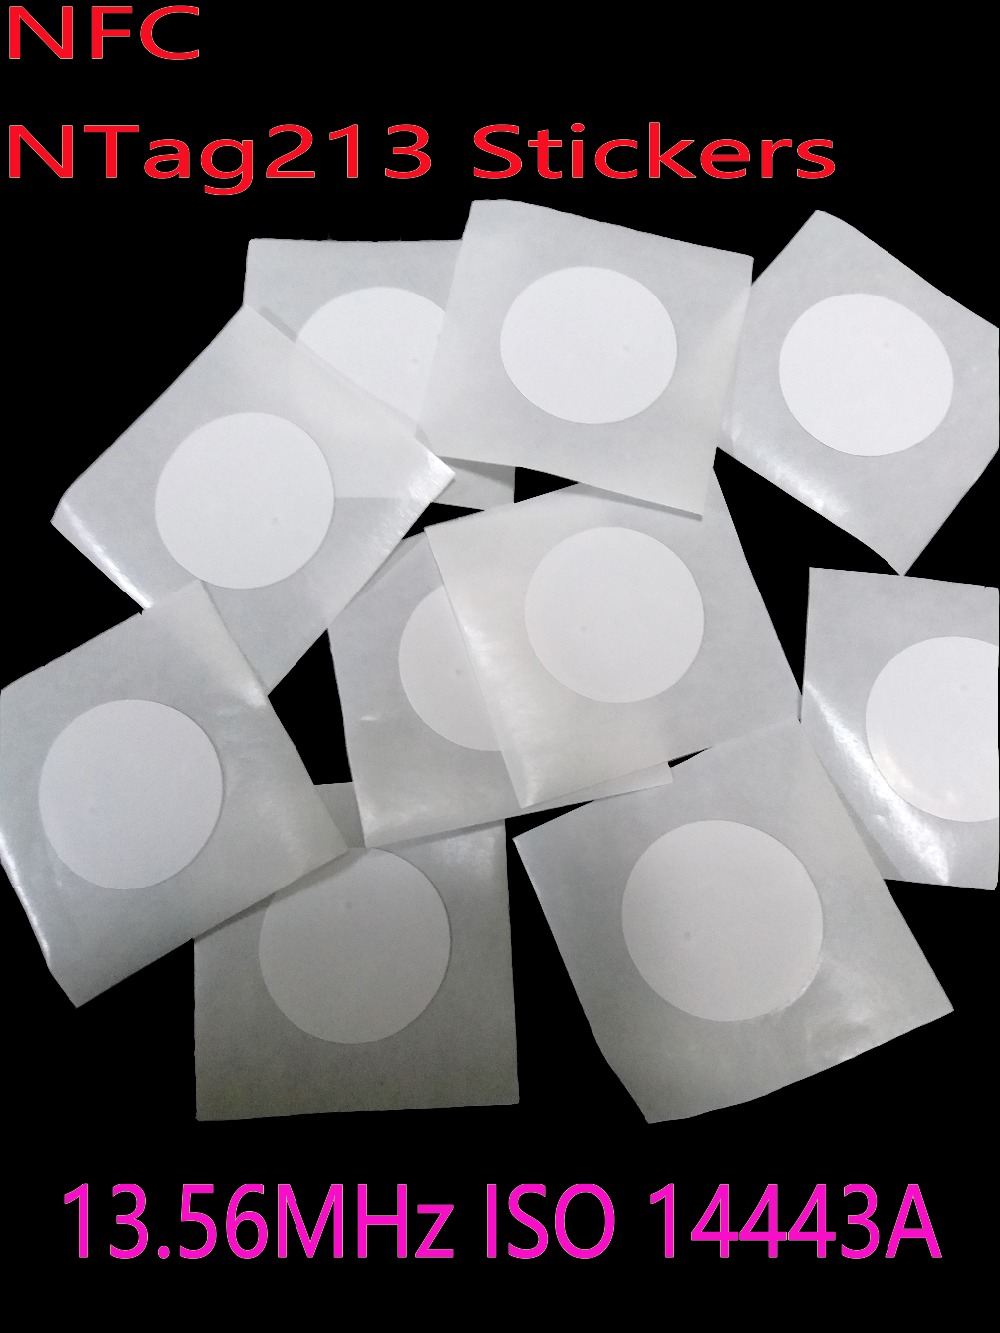 50pcs/Lot Ntag213 NFC TAG Sticker 13.56MHz ISO14443A Ntag 213 NFC Sticker Universal Lable RFID Tag for all NFC enabled phones 4pcs lot nfc tag sticker 13 56mhz iso14443a ntag 213 nfc sticker universal lable rfid tag for all nfc enabled phones dia 30mm